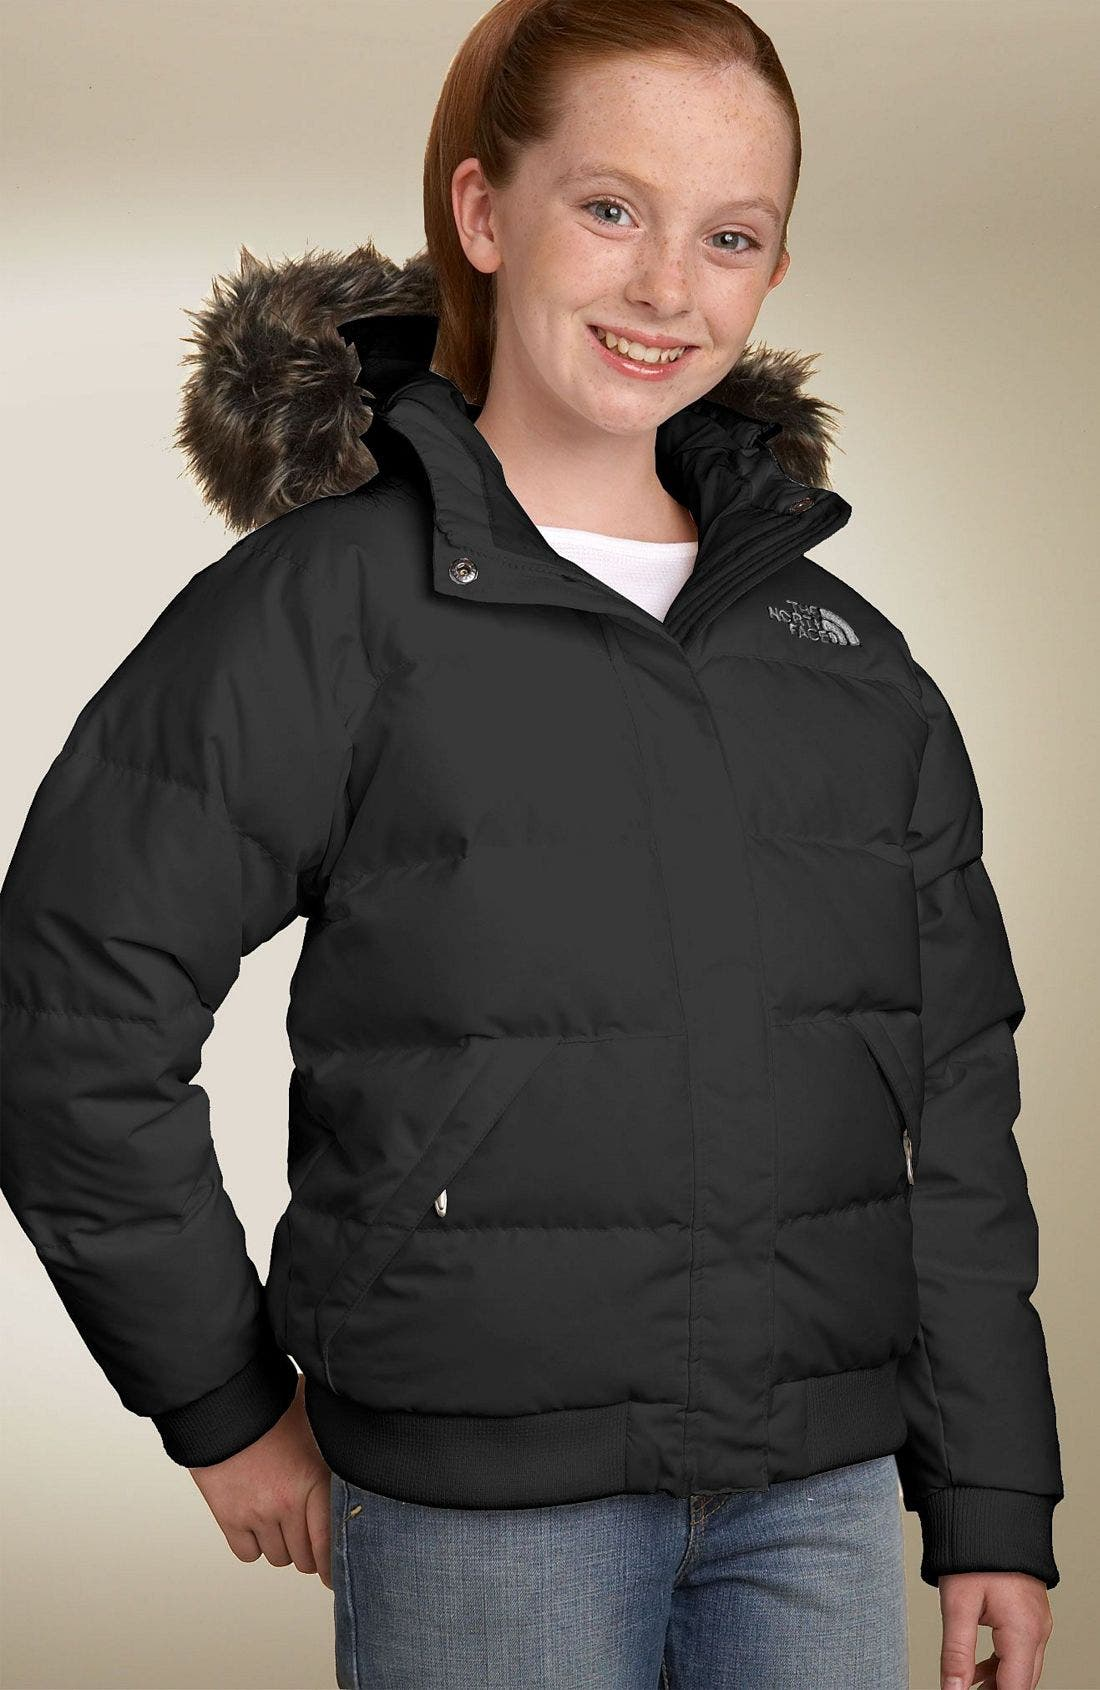 Alternate Image 1 Selected - The North Face 'Gotham' Jacket (Little Girls & Big Girls)